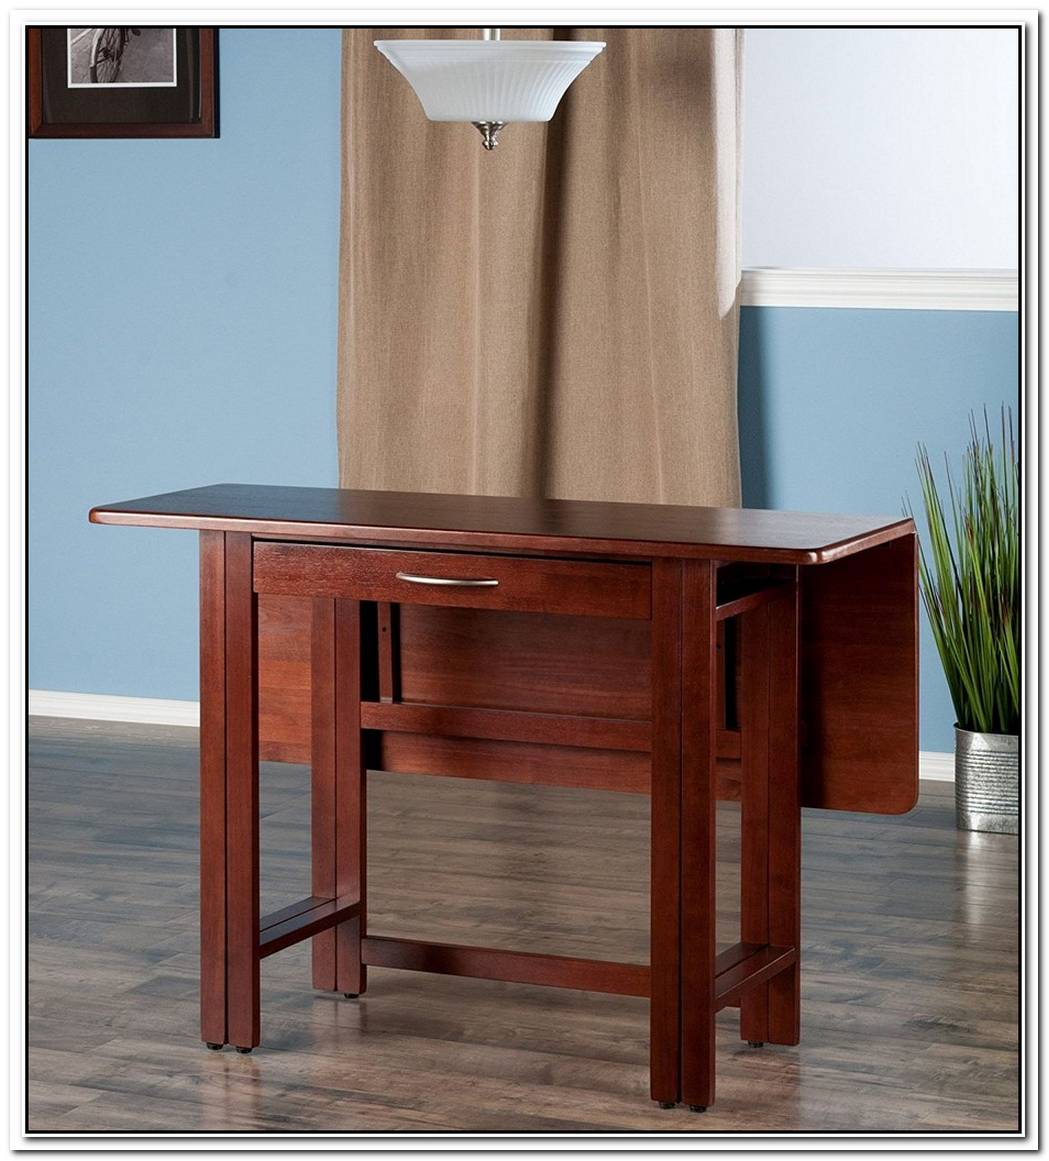 The Space Saving Drop Leaf Table Designs Our Homes Dream Of